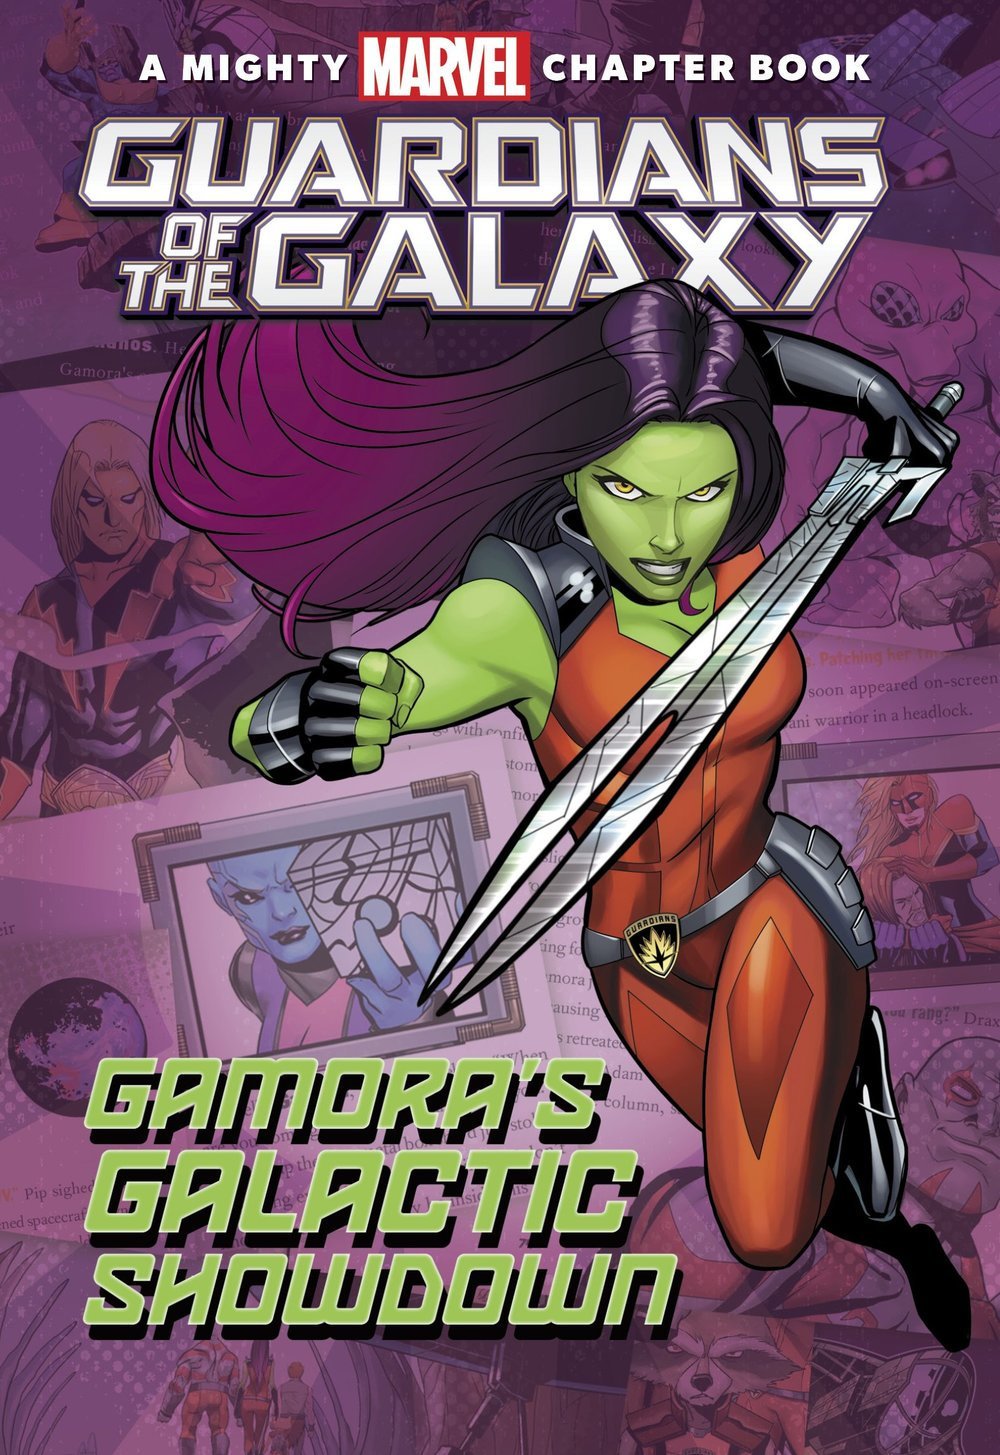 Gamora: Galactic Showdown